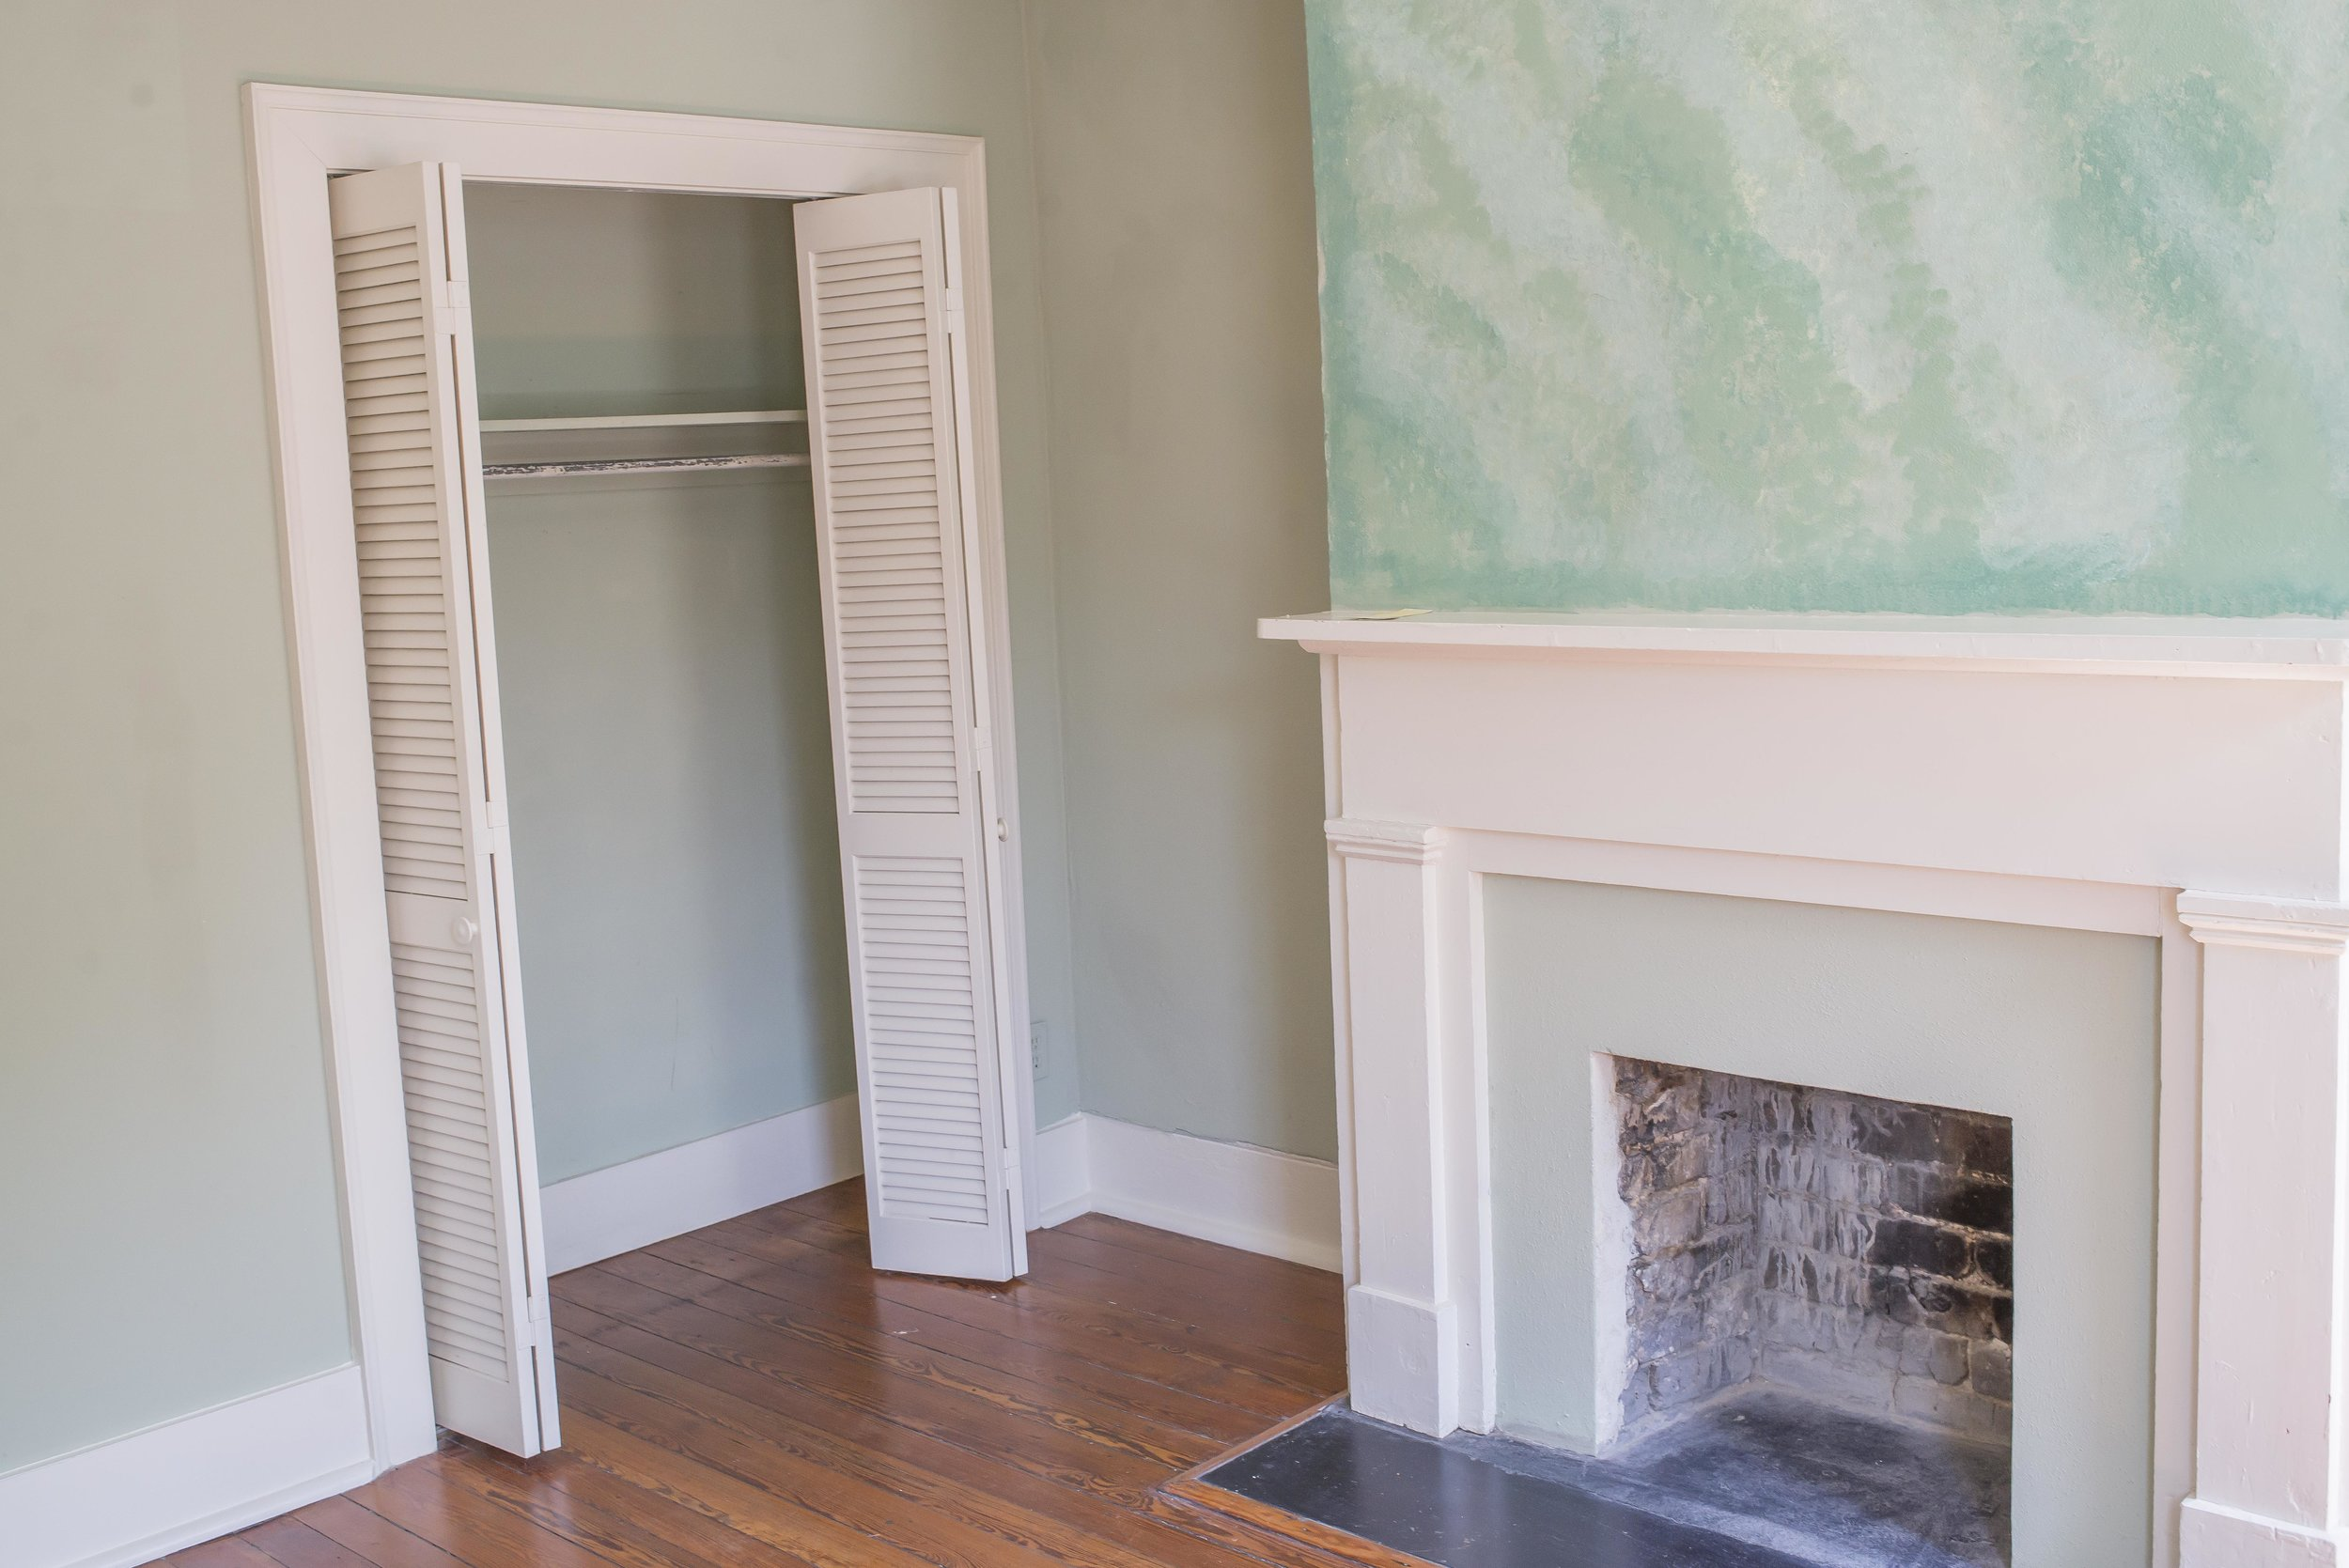 The master bedroom was very green and very small, but again, the fireplace is very charming.